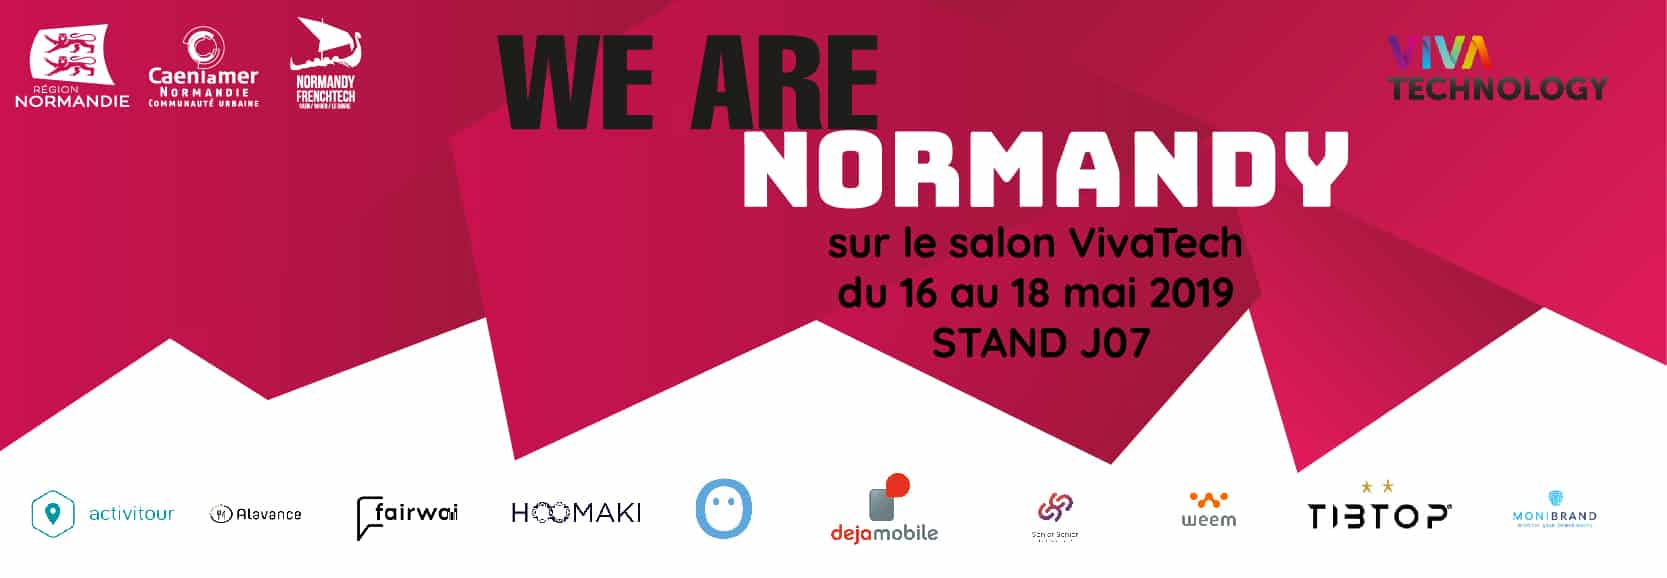 dejamobile-vivatech-paris-16-to-18-may-2019